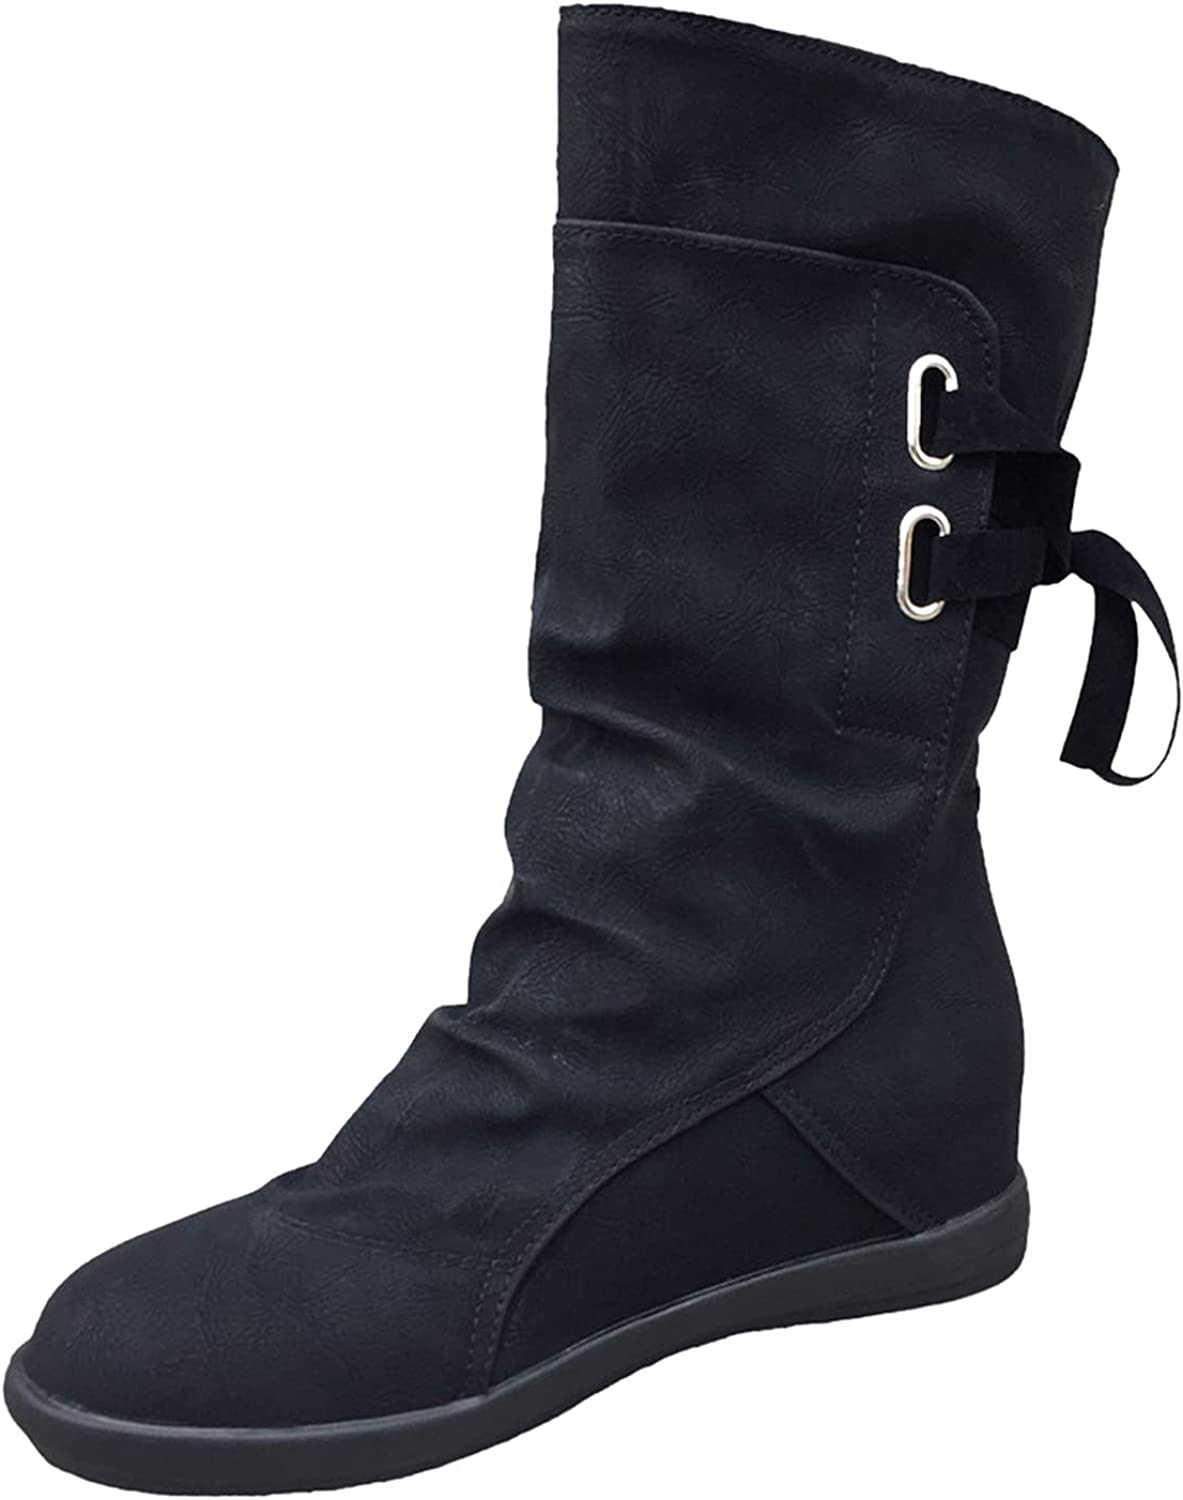 Boots for Women,Women's Knight Boots Retro Lace Up Roman Midi Tube Booties Low Heel Round Toe Outdoor Wedge Shoes